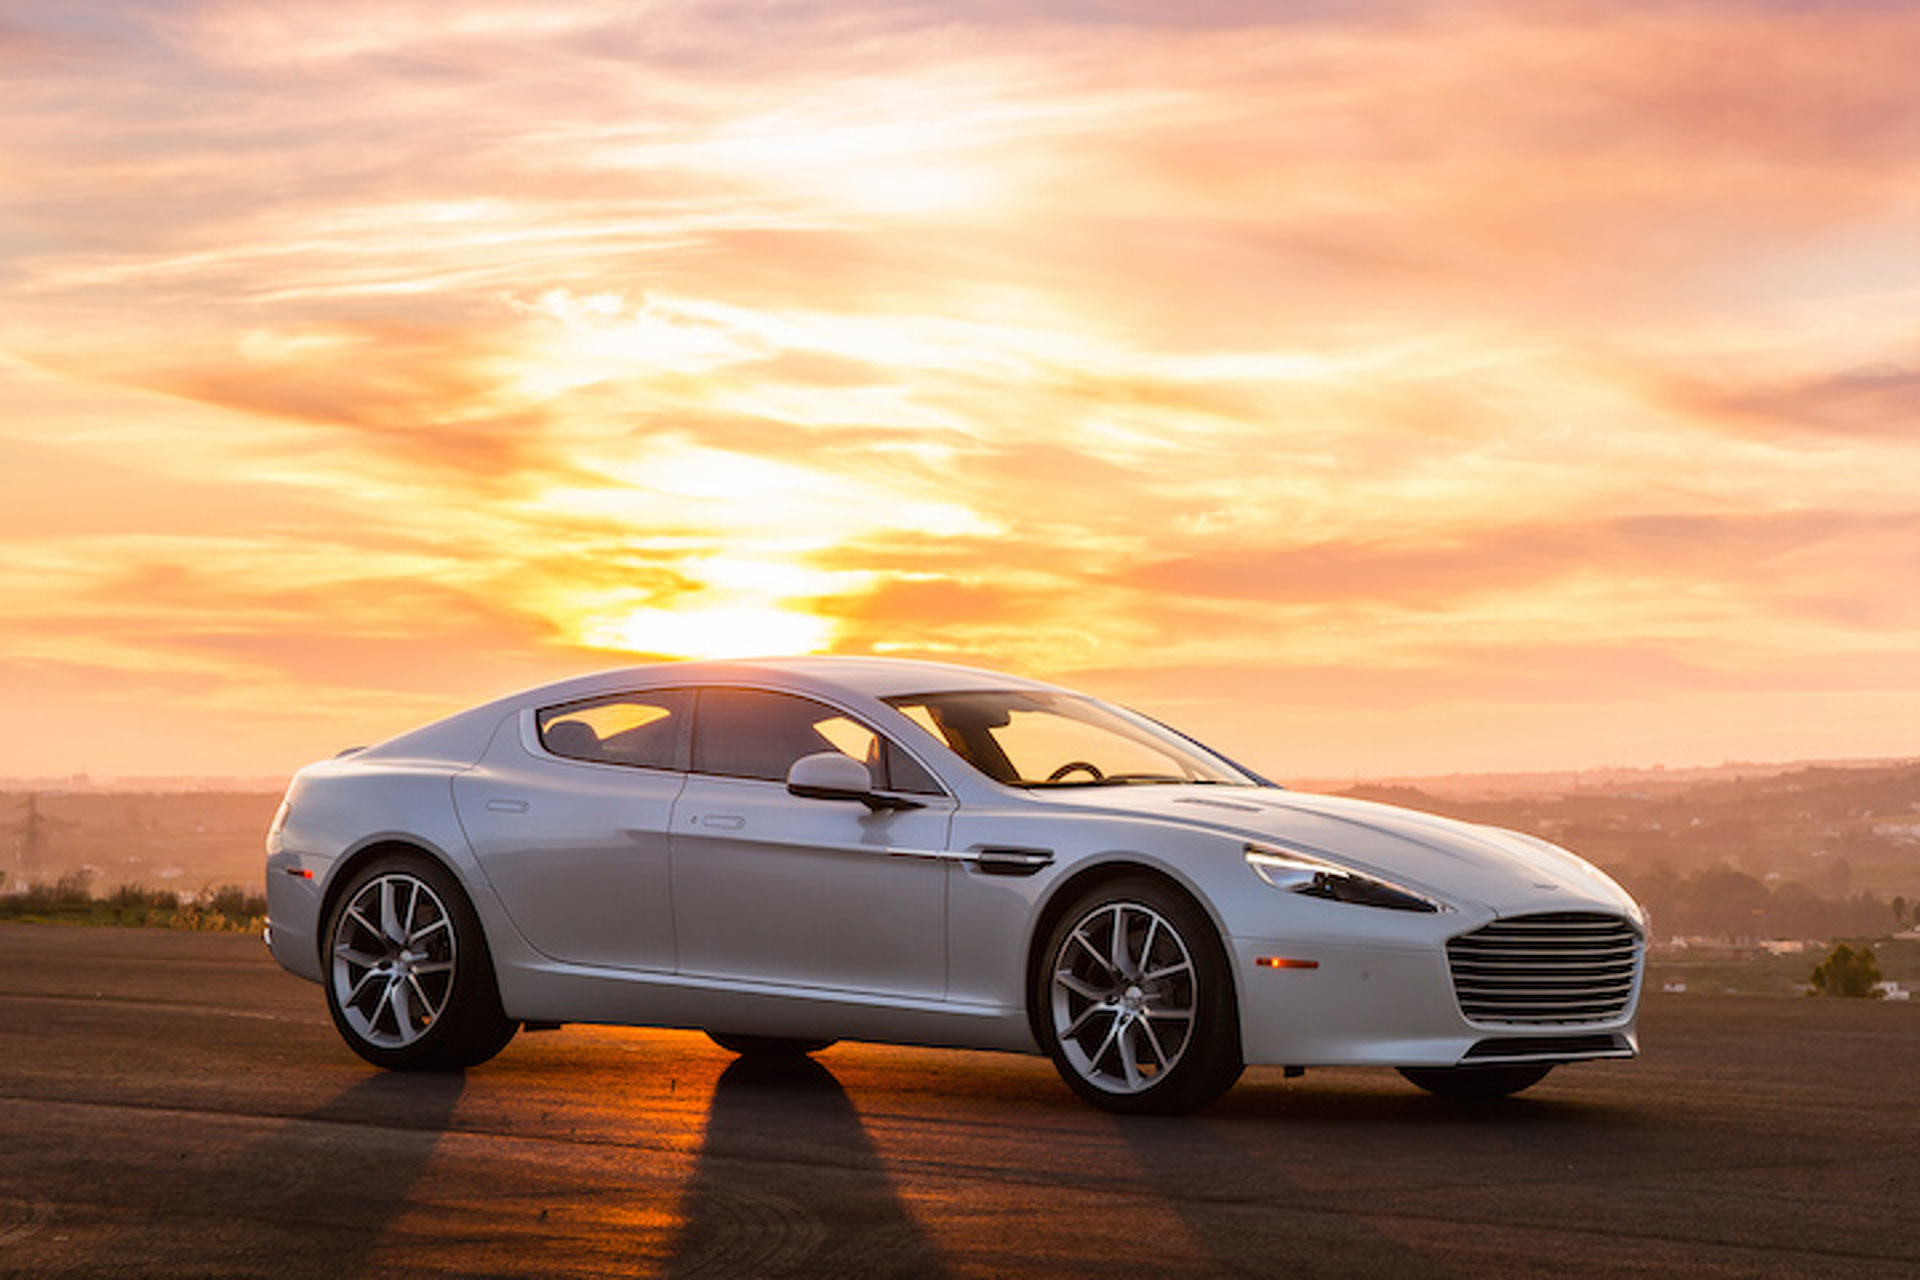 5 Performance Vehicles Perfect for a Weekend Getaway